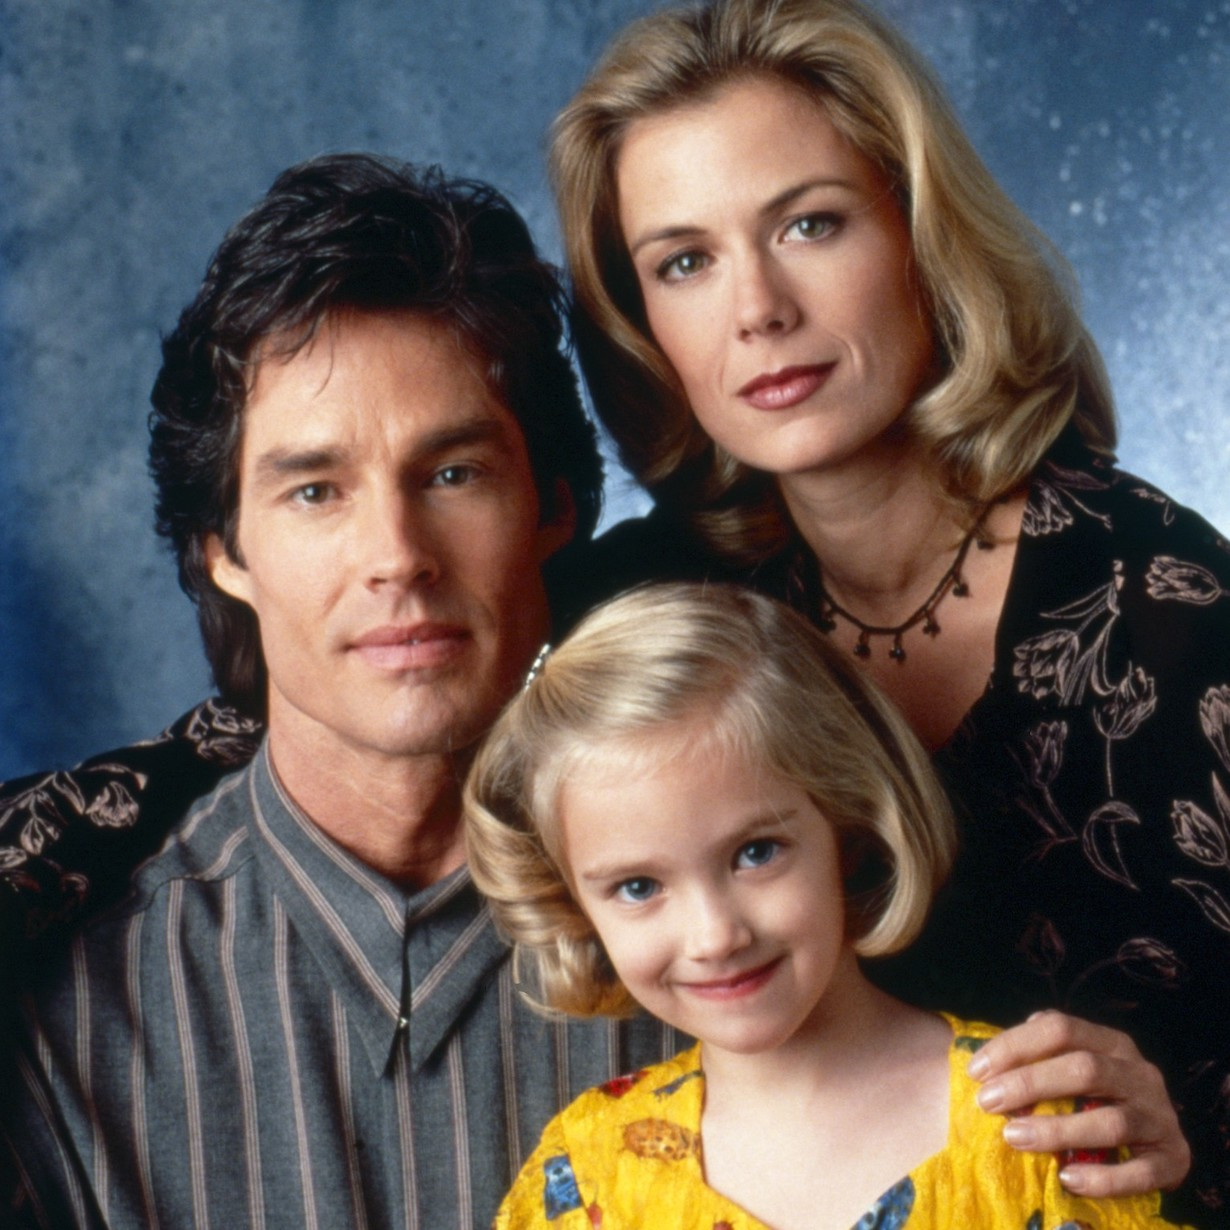 THE BOLD AND THE BEAUTIFUL, from left: Ronn Moss, Landry Allbright, Katherine Kelly Lang, 1990s, 1987– . ph: Monty Brinton /© CBS / Courtesy Everett Collection